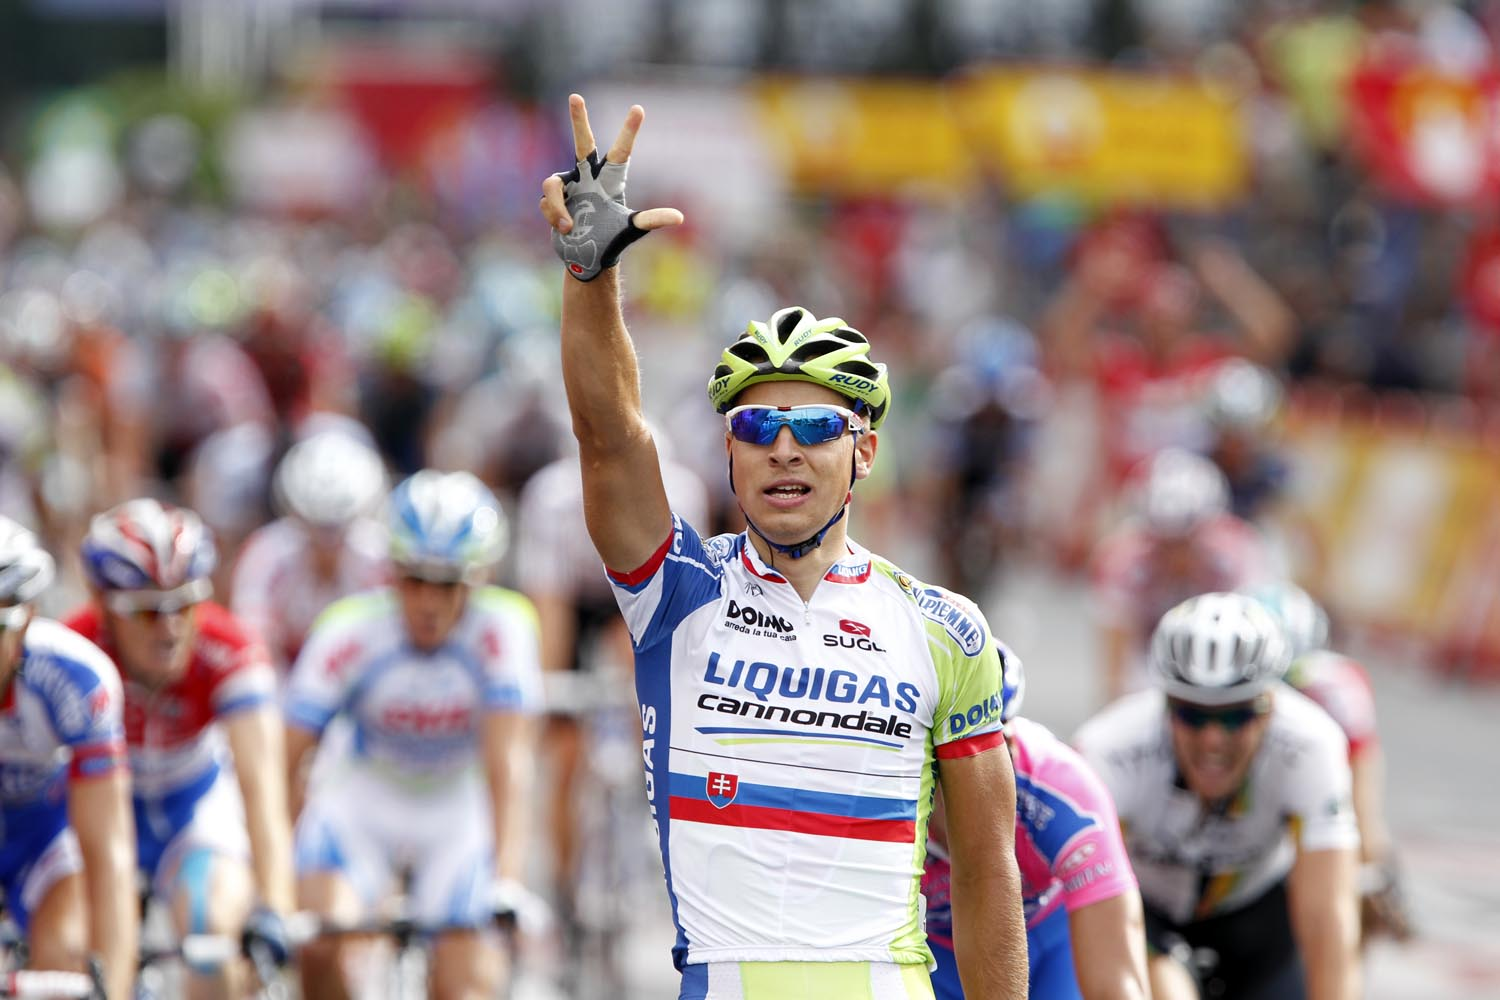 Peter Sagan wins final stage, Vuelta a Espana 2011, stage 21